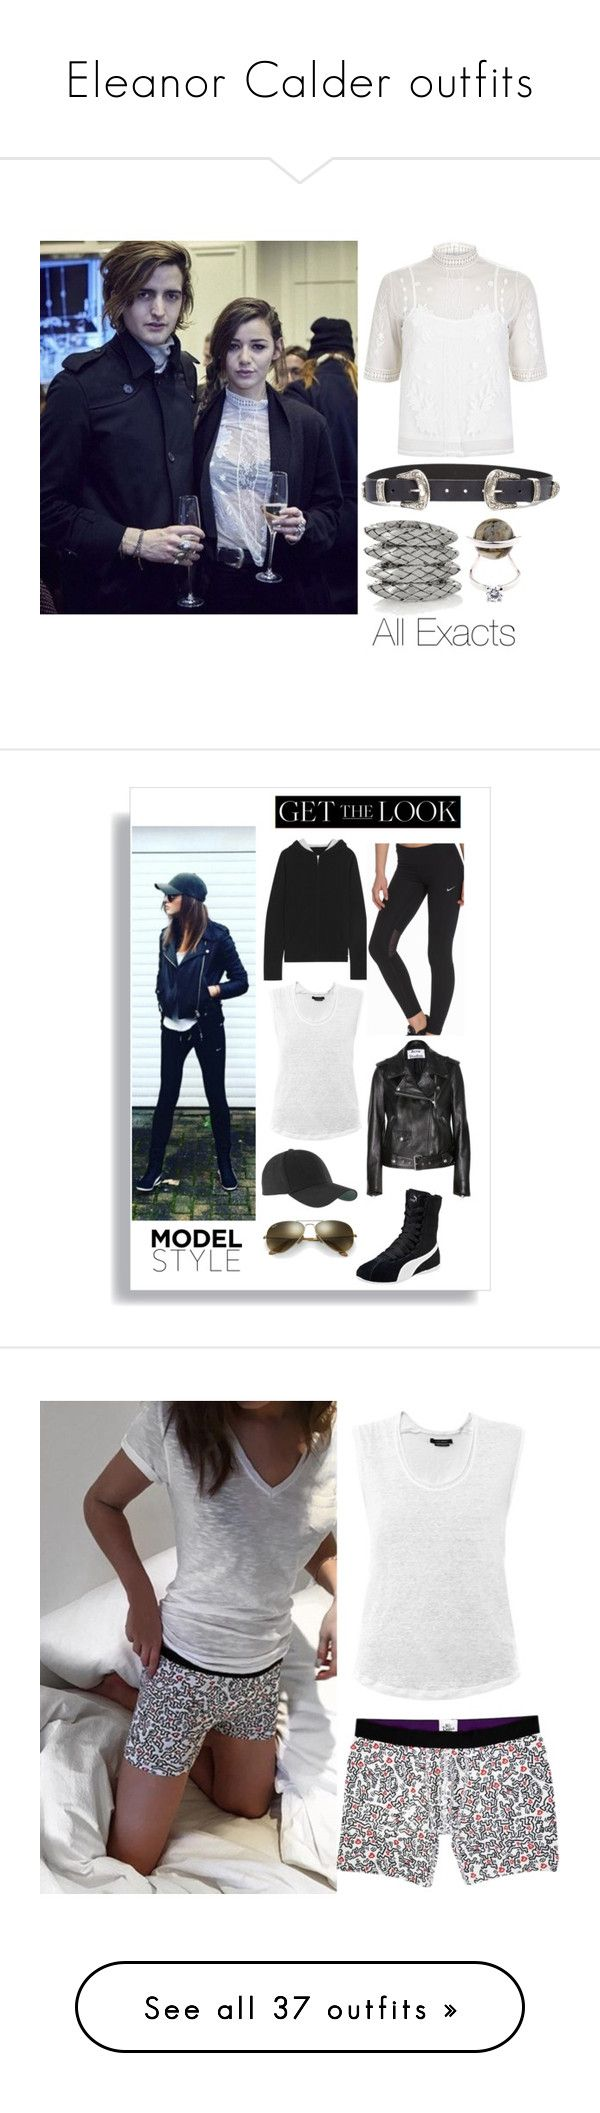 """Eleanor Calder outfits"" by manakda ❤ liked on Polyvore featuring ASOS, River Island, Bottega Veneta, Fendi, women's clothing, women, female, woman, misses and juniors"